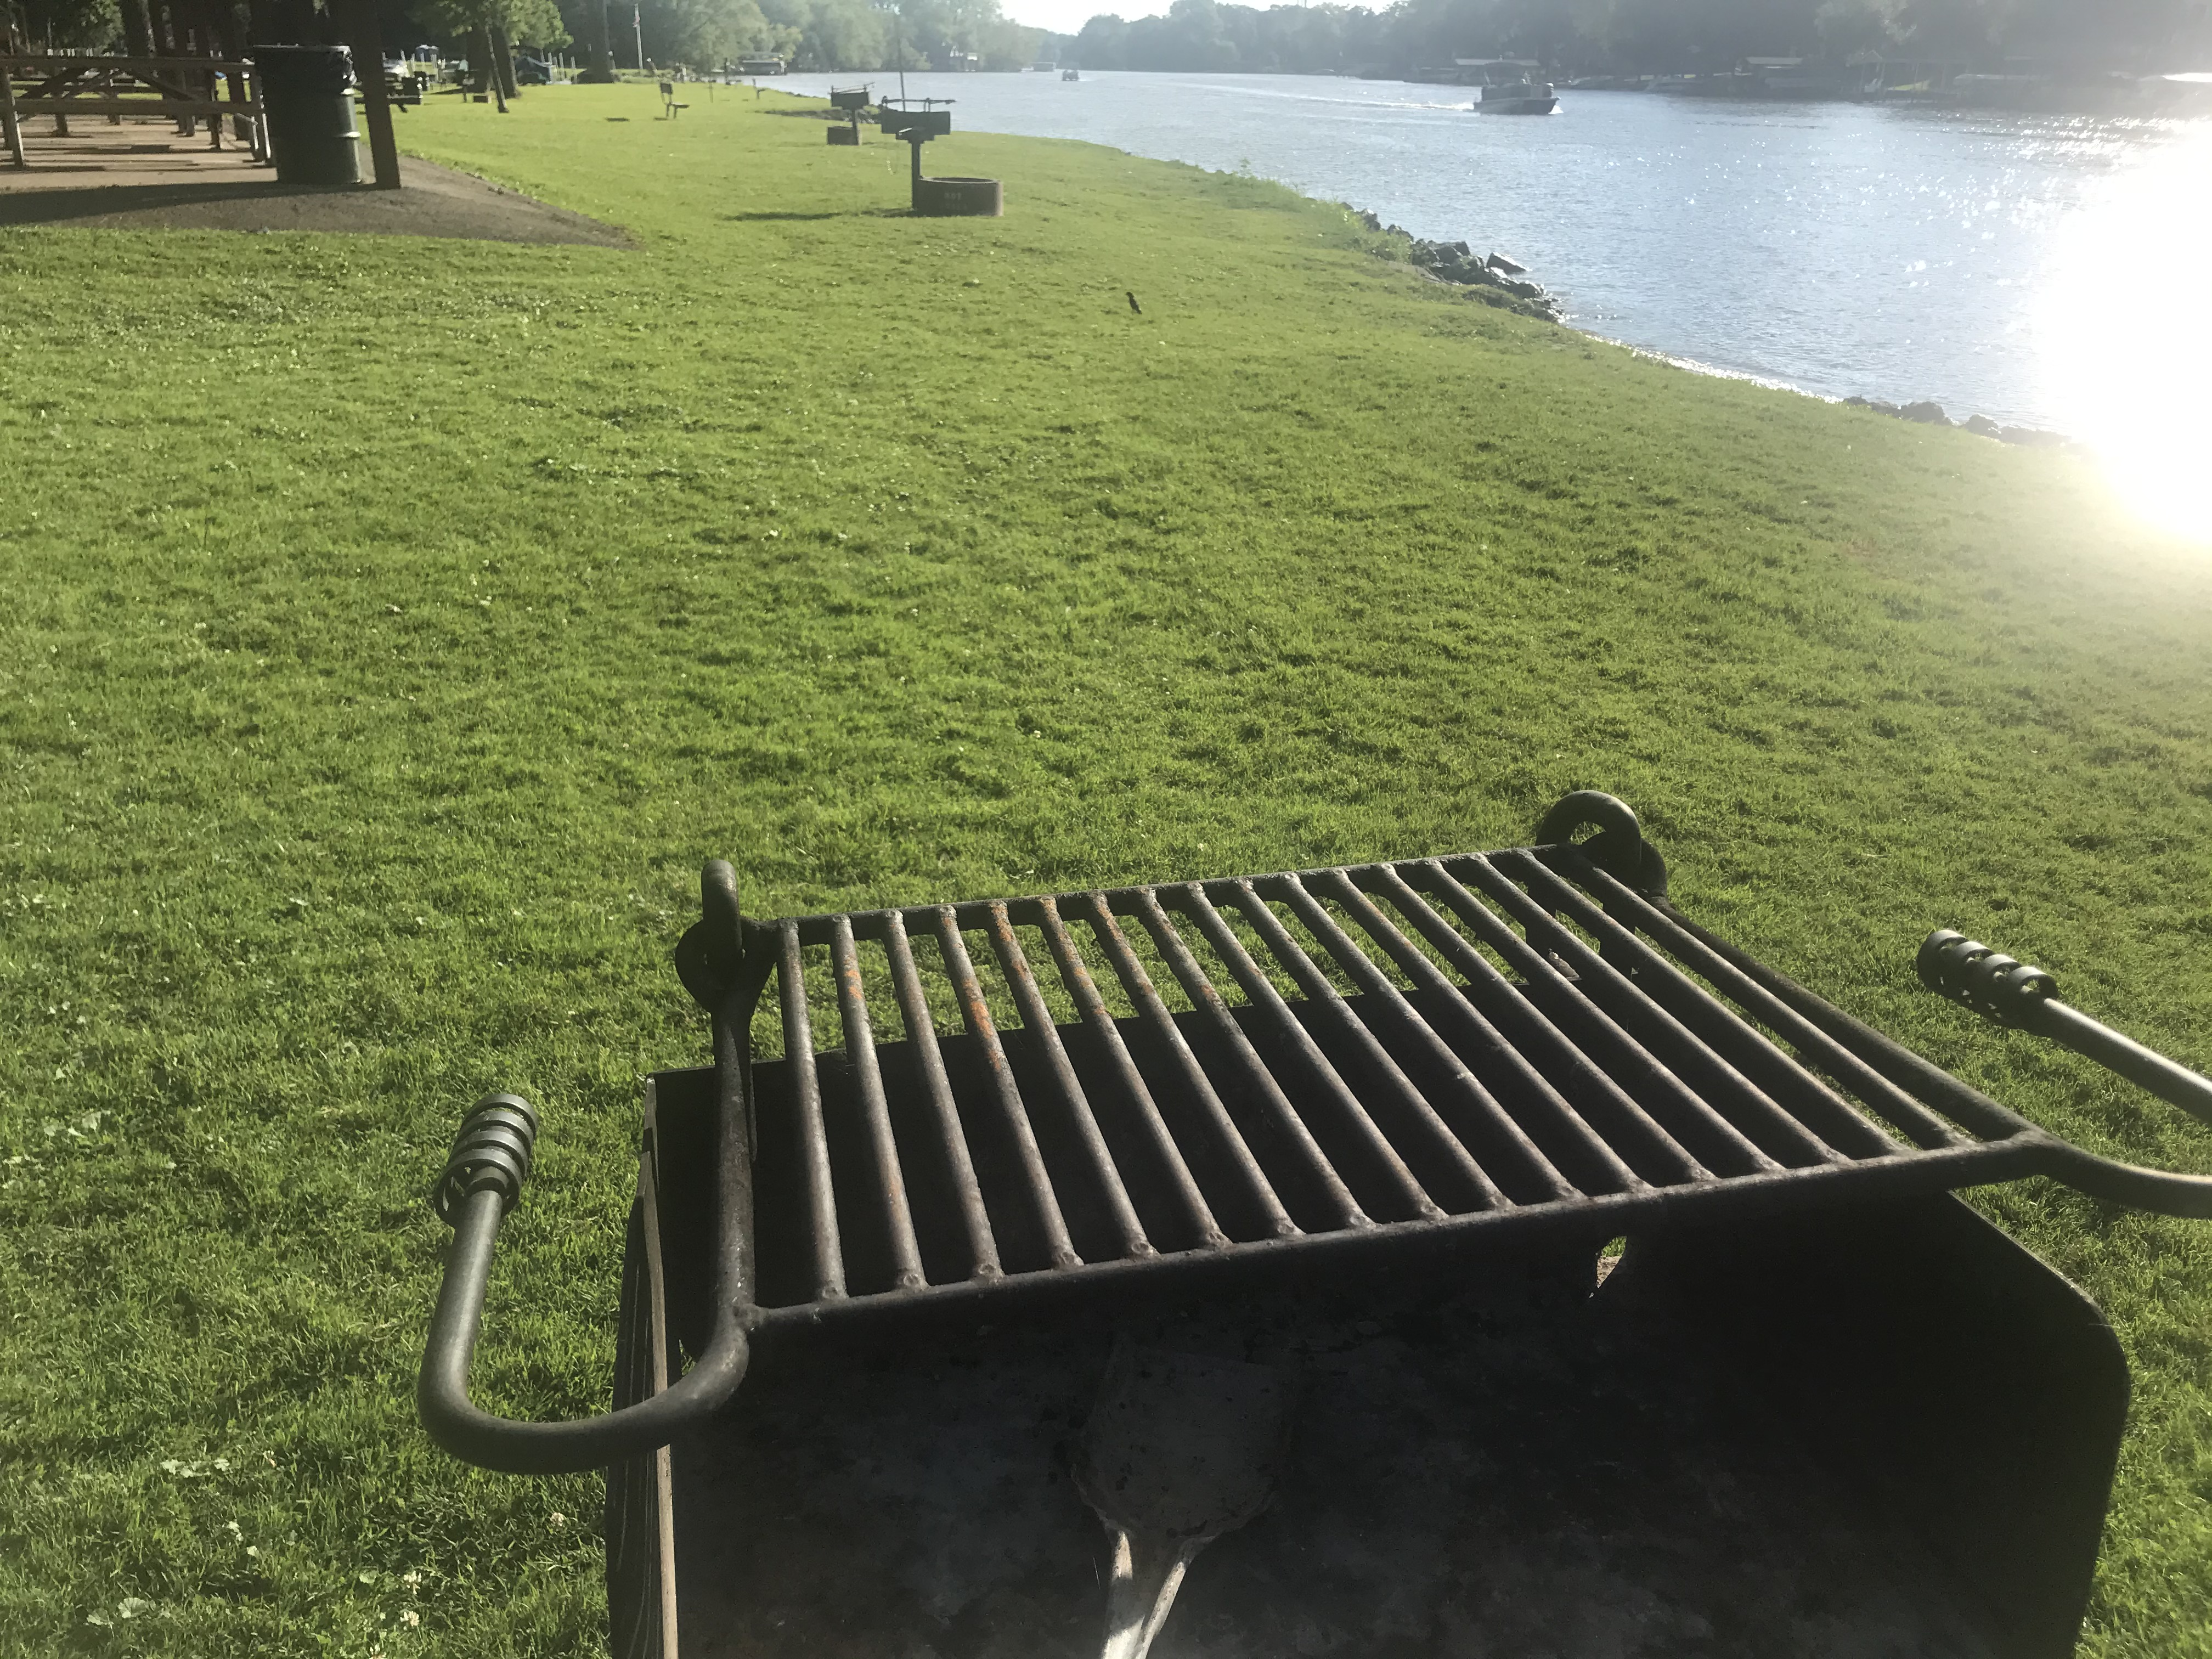 That grill at the park